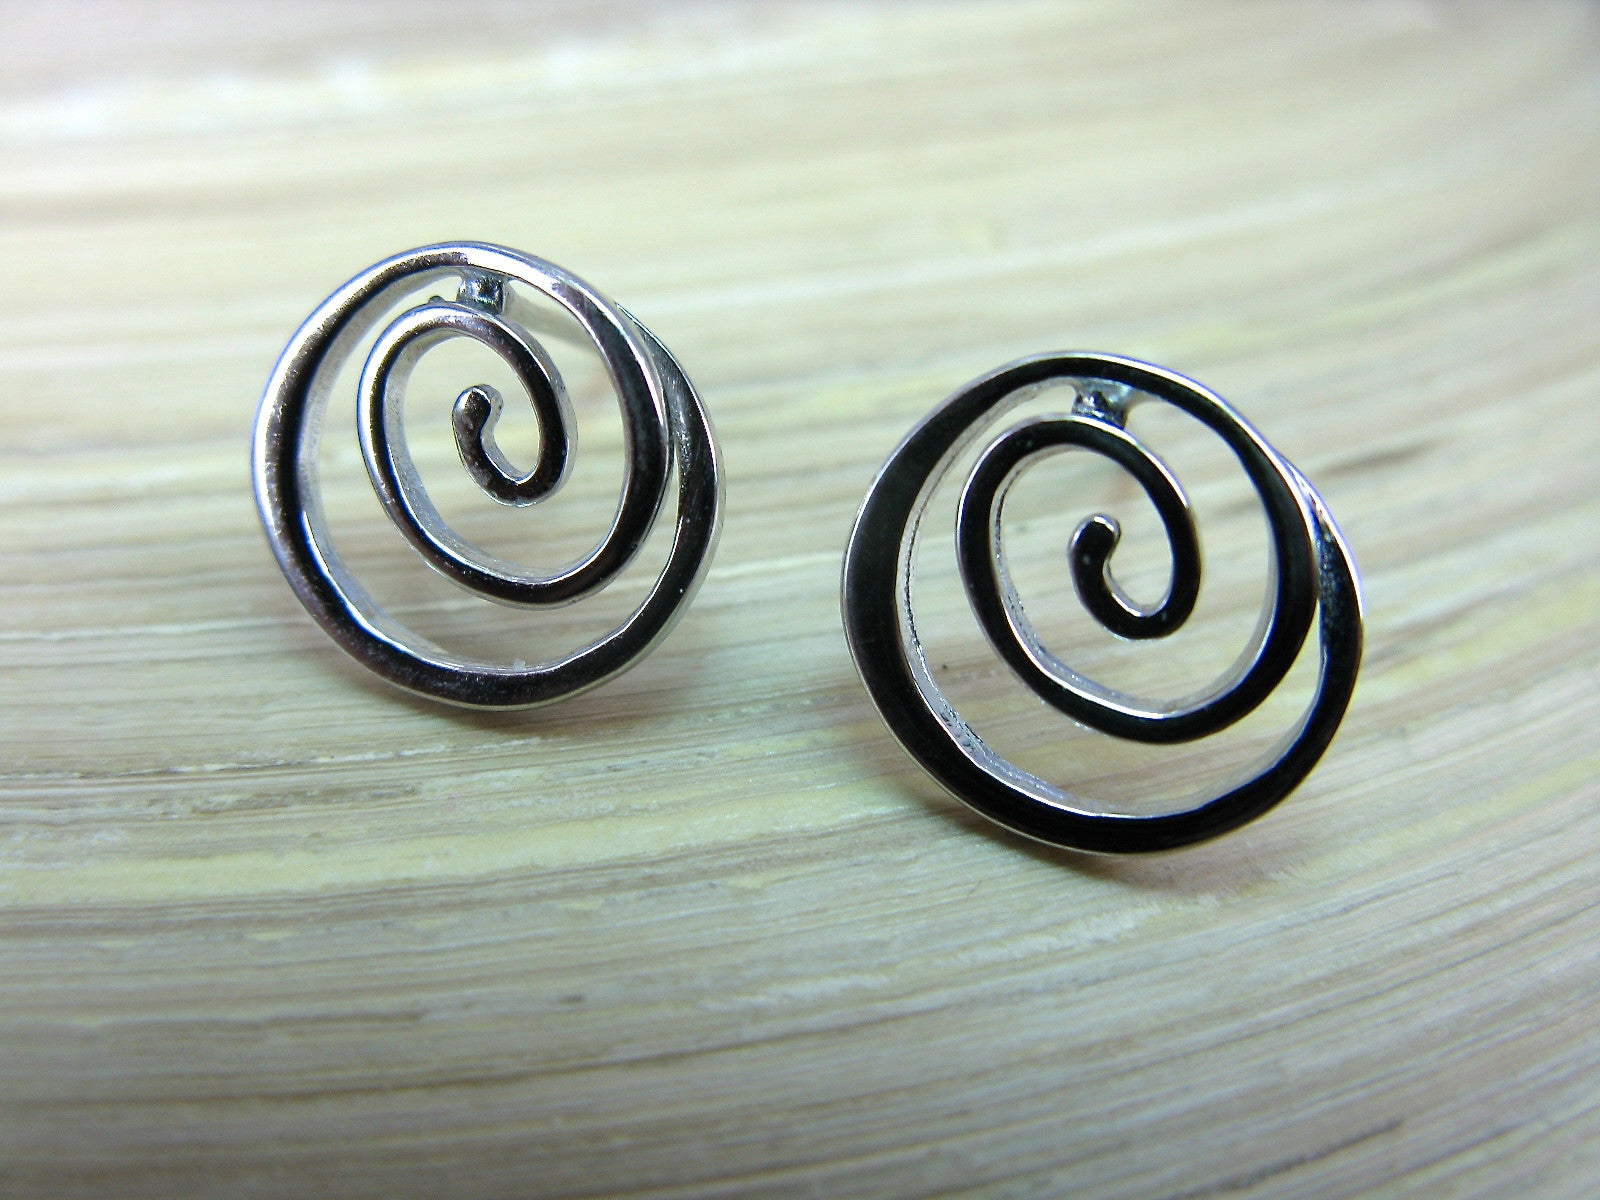 Swirl Spiral Round 925 Sterling Silver Stud Earrings Stud Faith Owl - Faith Owl